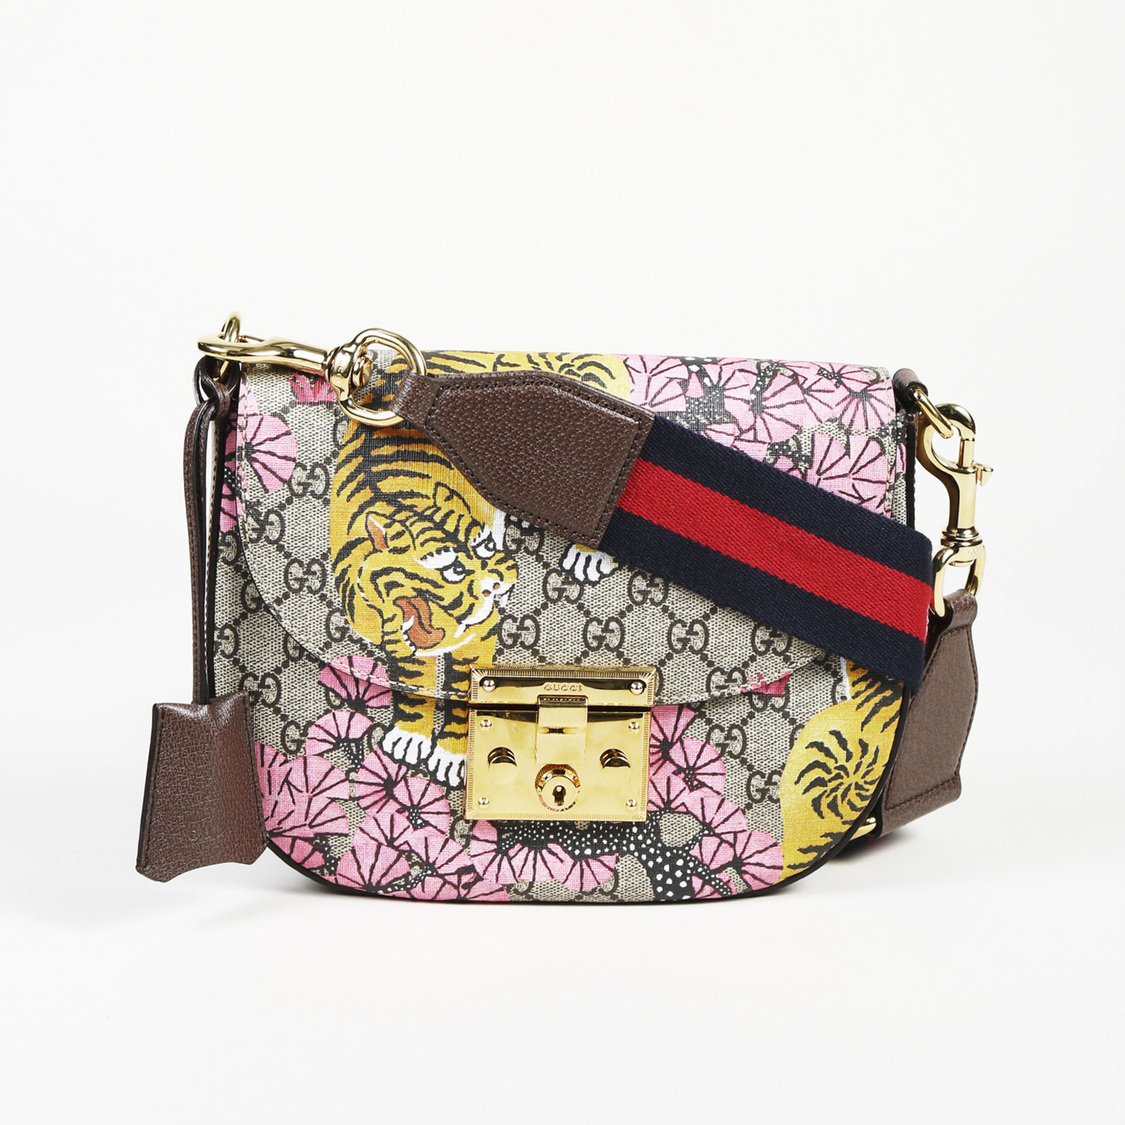 a83d48863 Details about Gucci GG Supreme Coated Canvas Medium